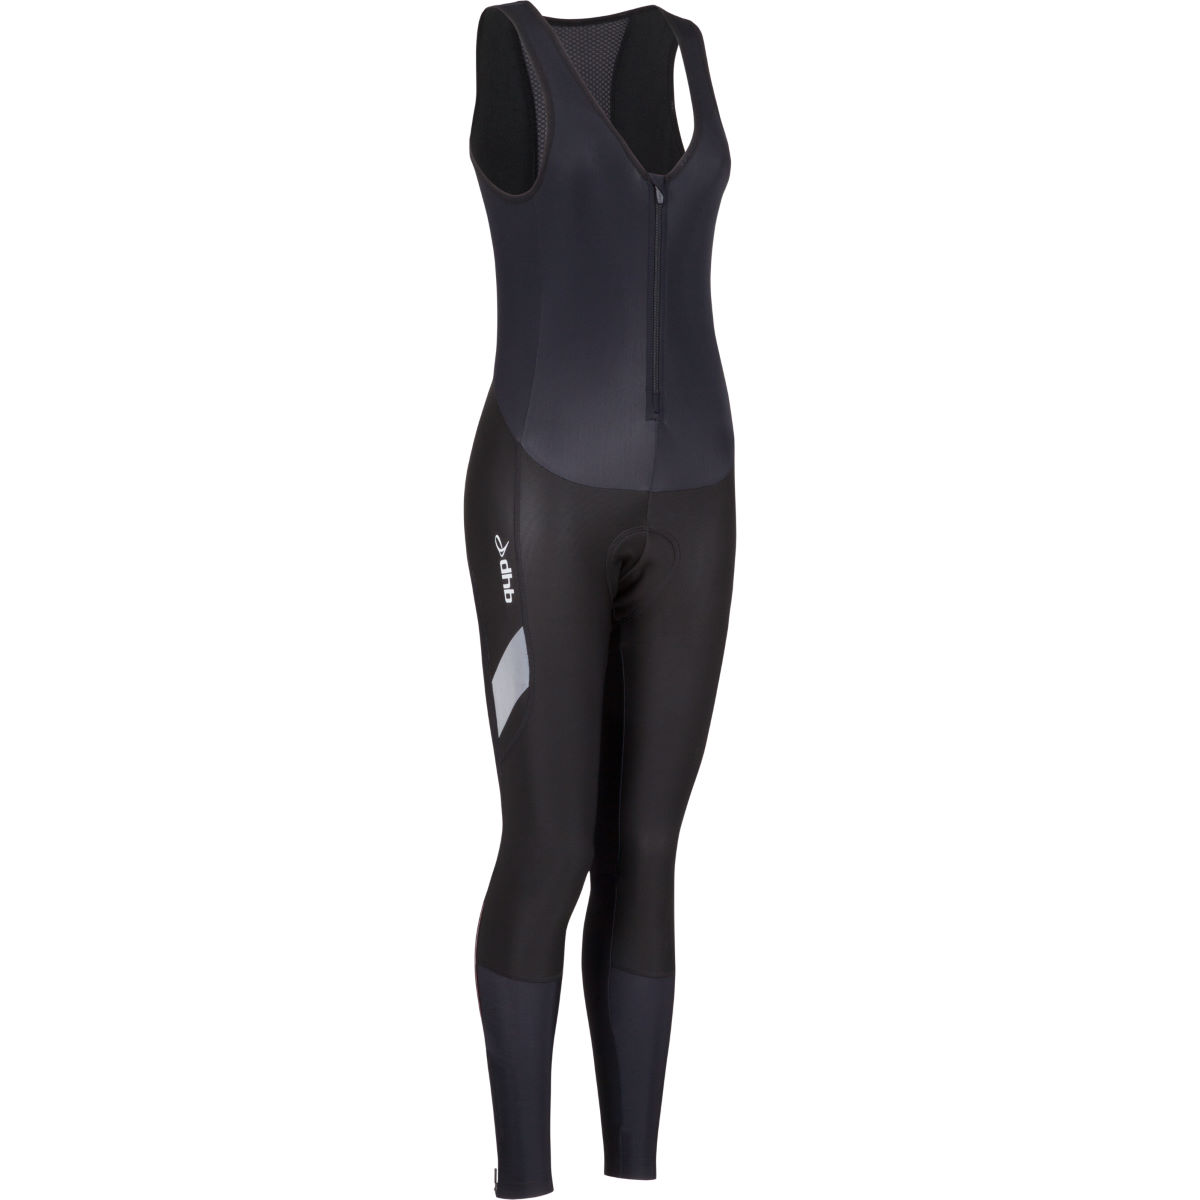 dhb Women's Aeron Windslam Roubaix Bib Tight - UK 16 Black